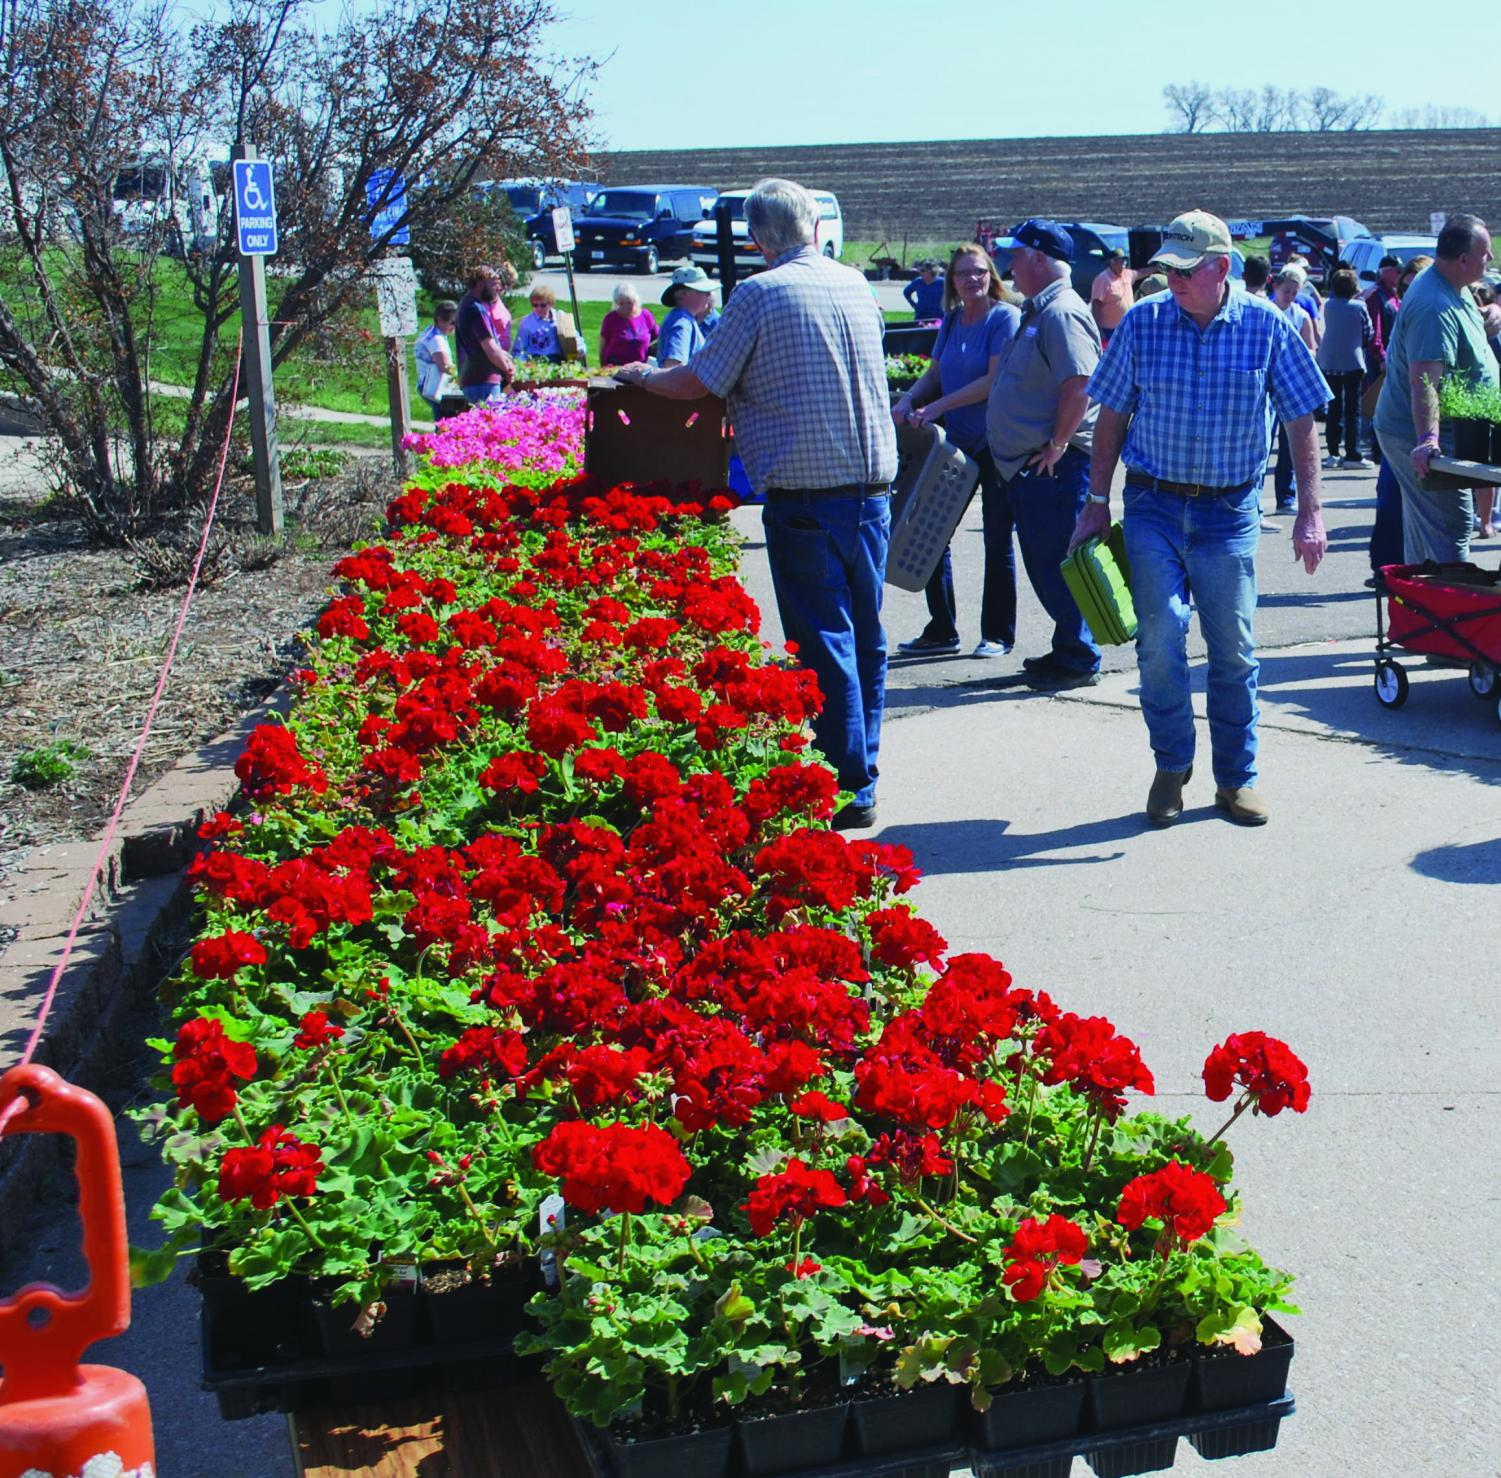 The annual spring flower sale hosted by horticulture students offered more than 10,000 plants and herbs.